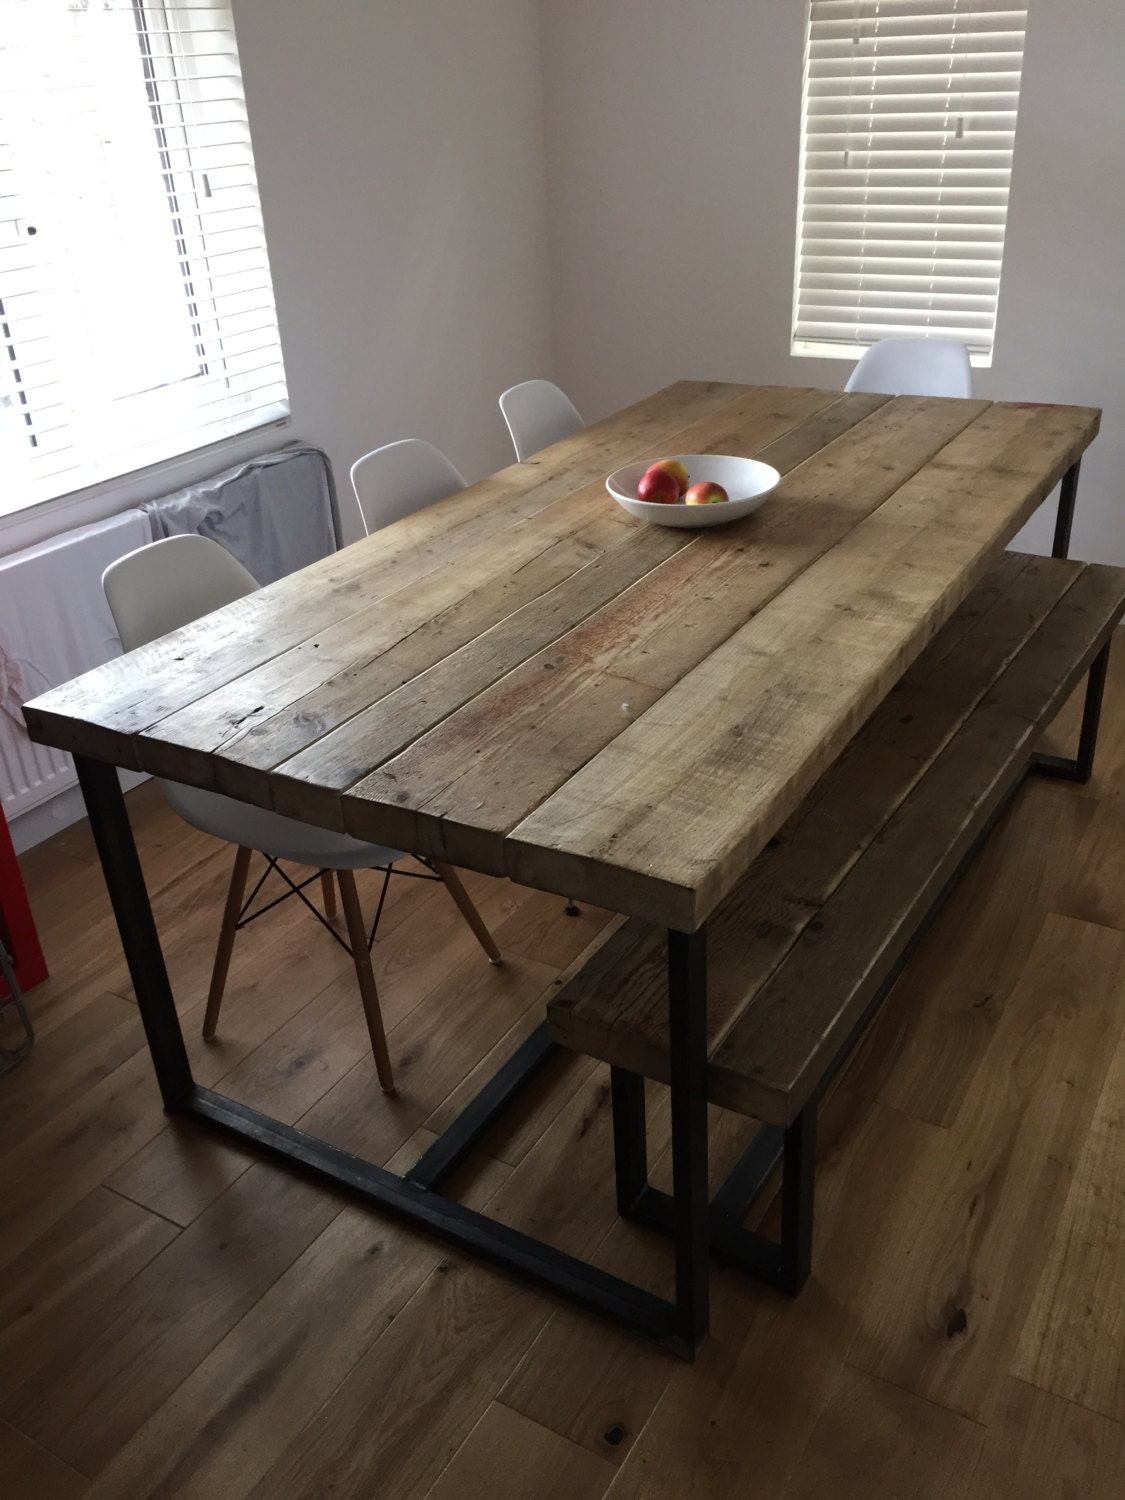 Reclaimed Industrial Chic 6 8 Seater Solid Wood And Metal